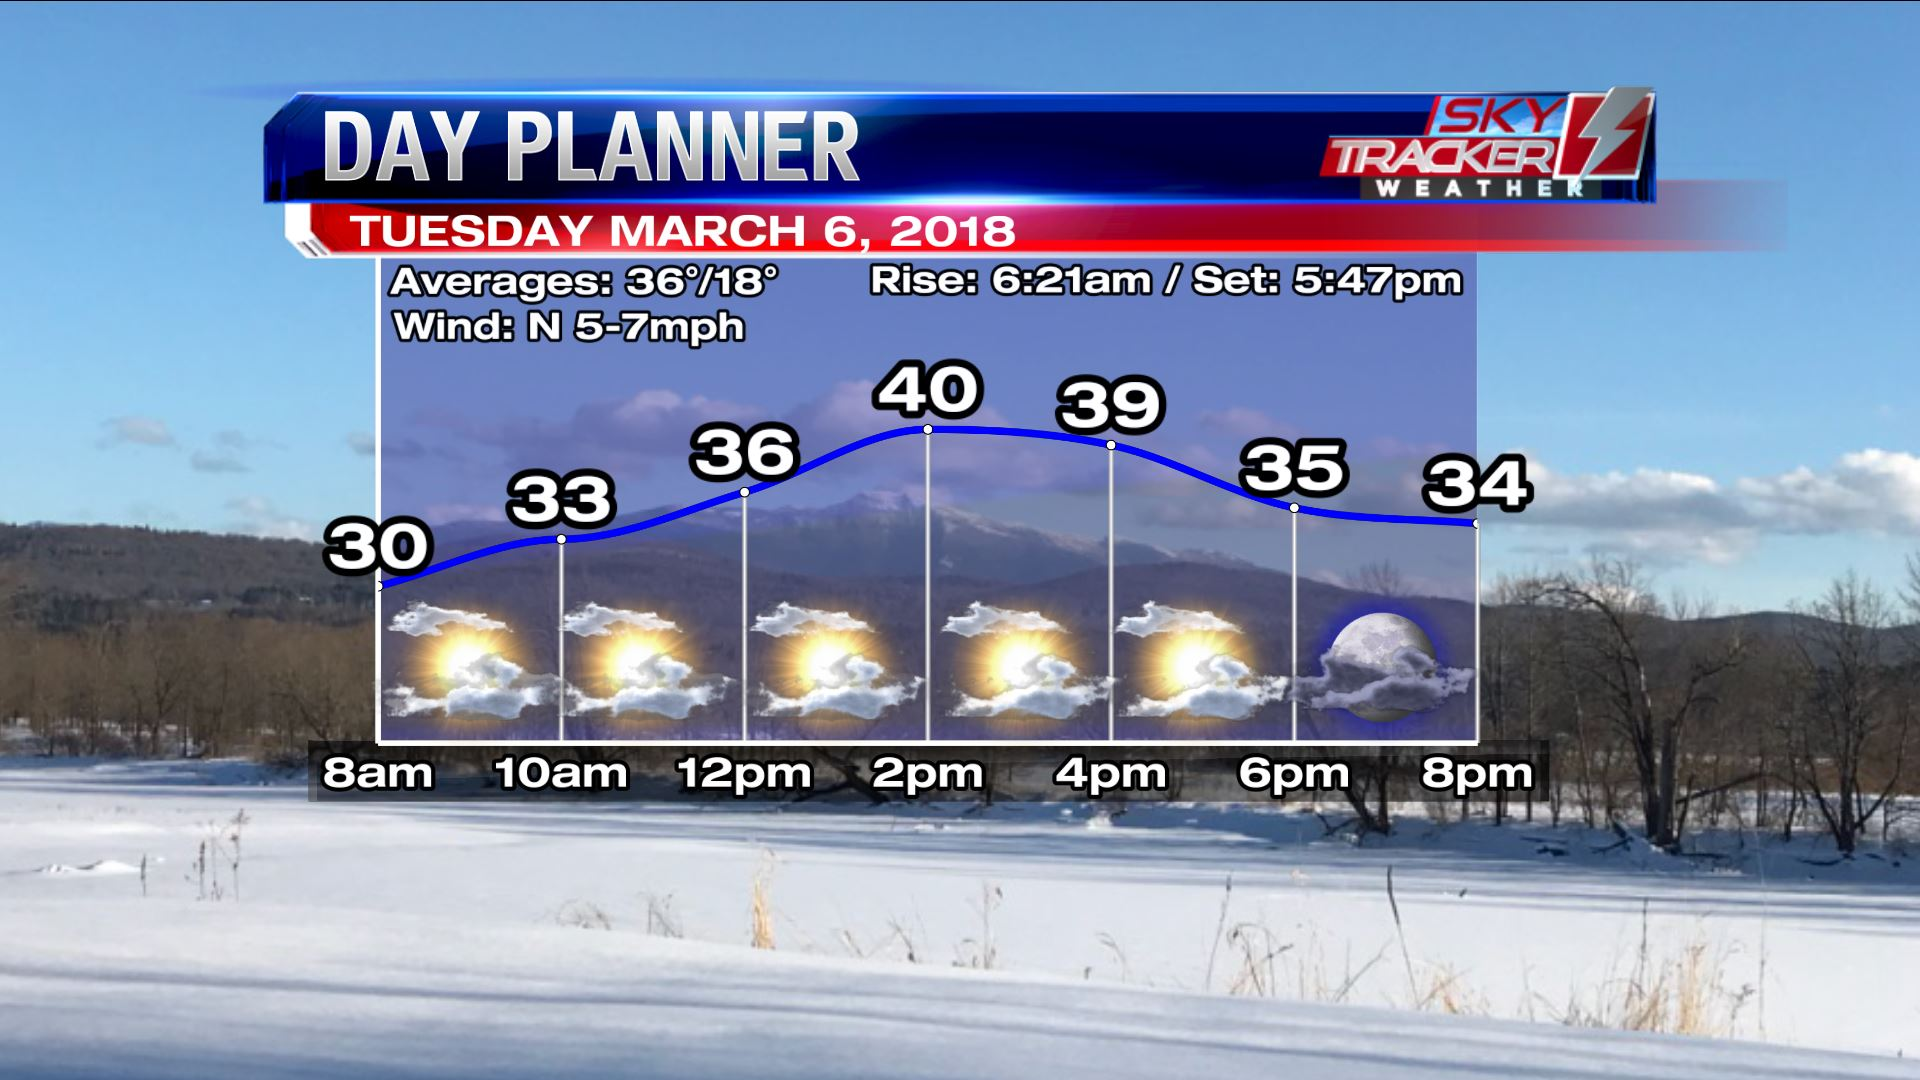 Planner for Tuesday March 6 2018